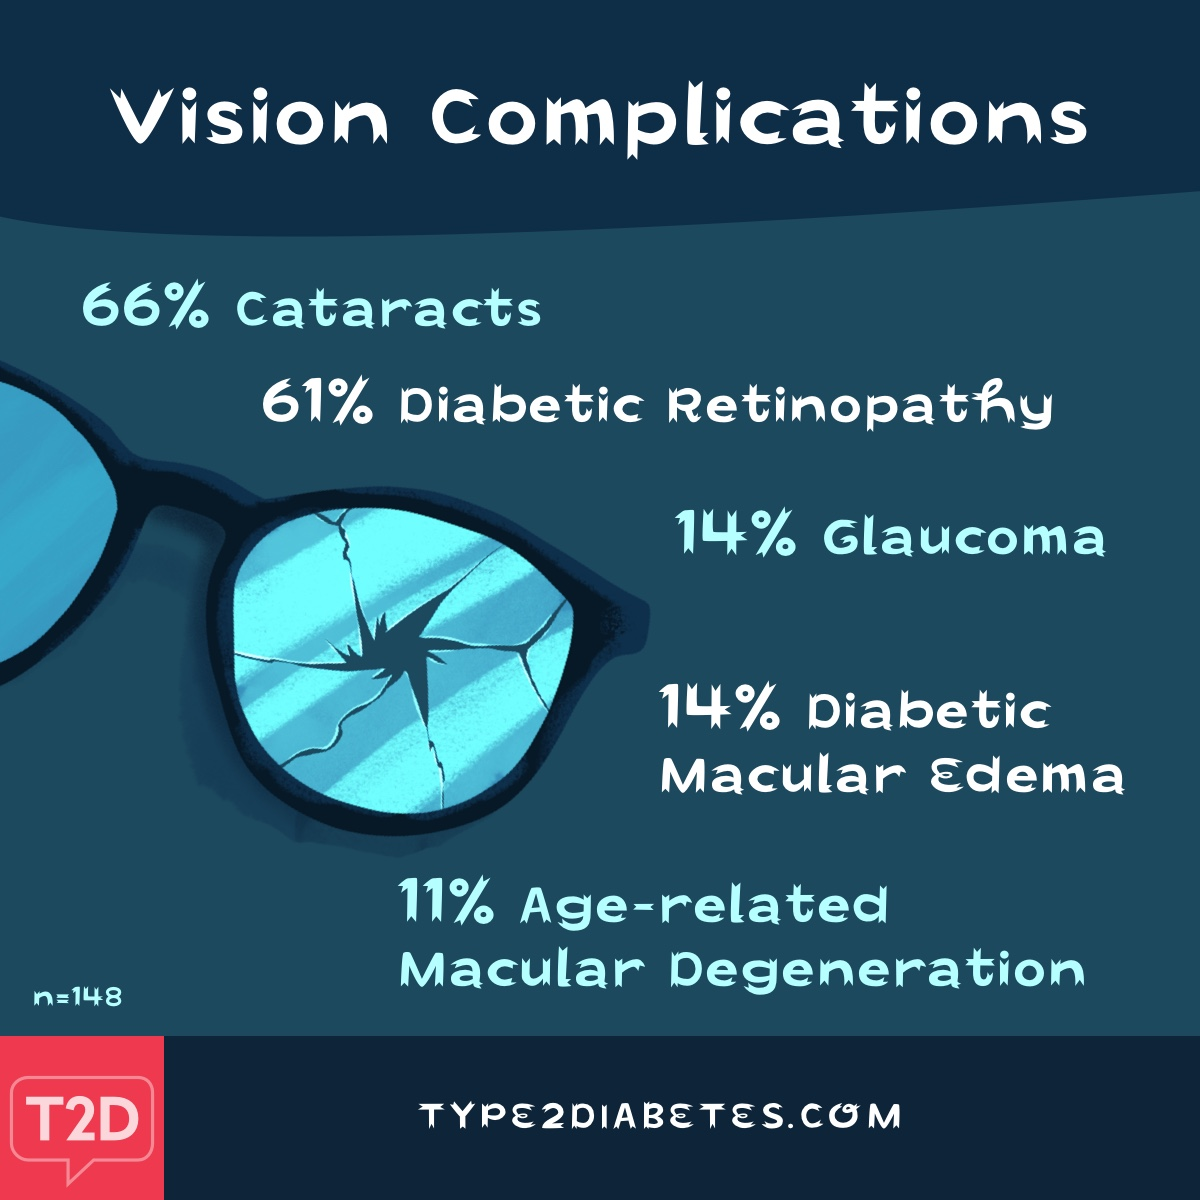 Vision complications include but are not limited to, cataracts, diabetic retinopathy and glaucoma